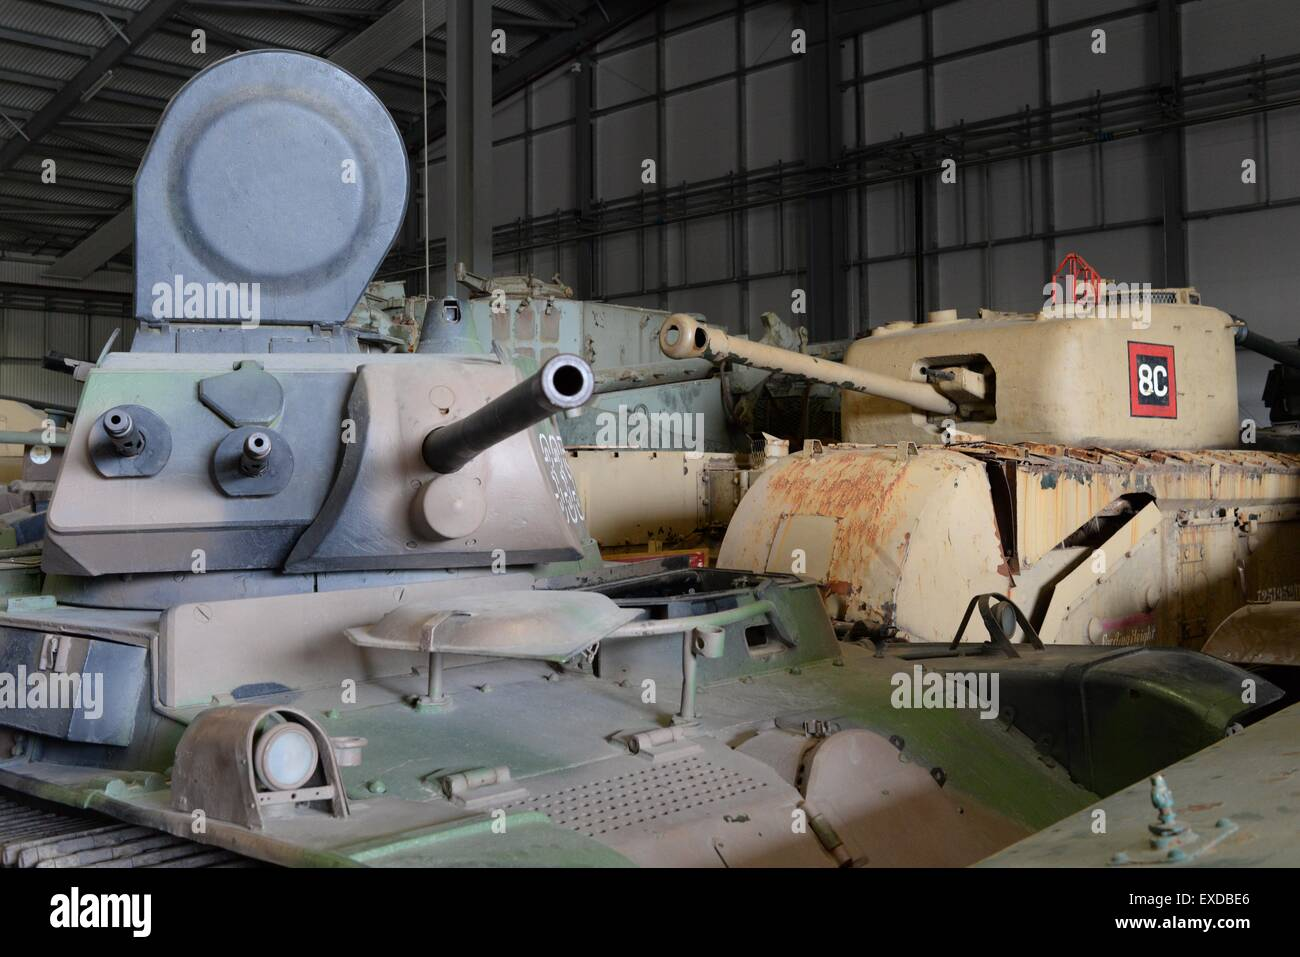 Vintage tanks on display at the Tank Museum, Bovington, Dorset. - Stock Image